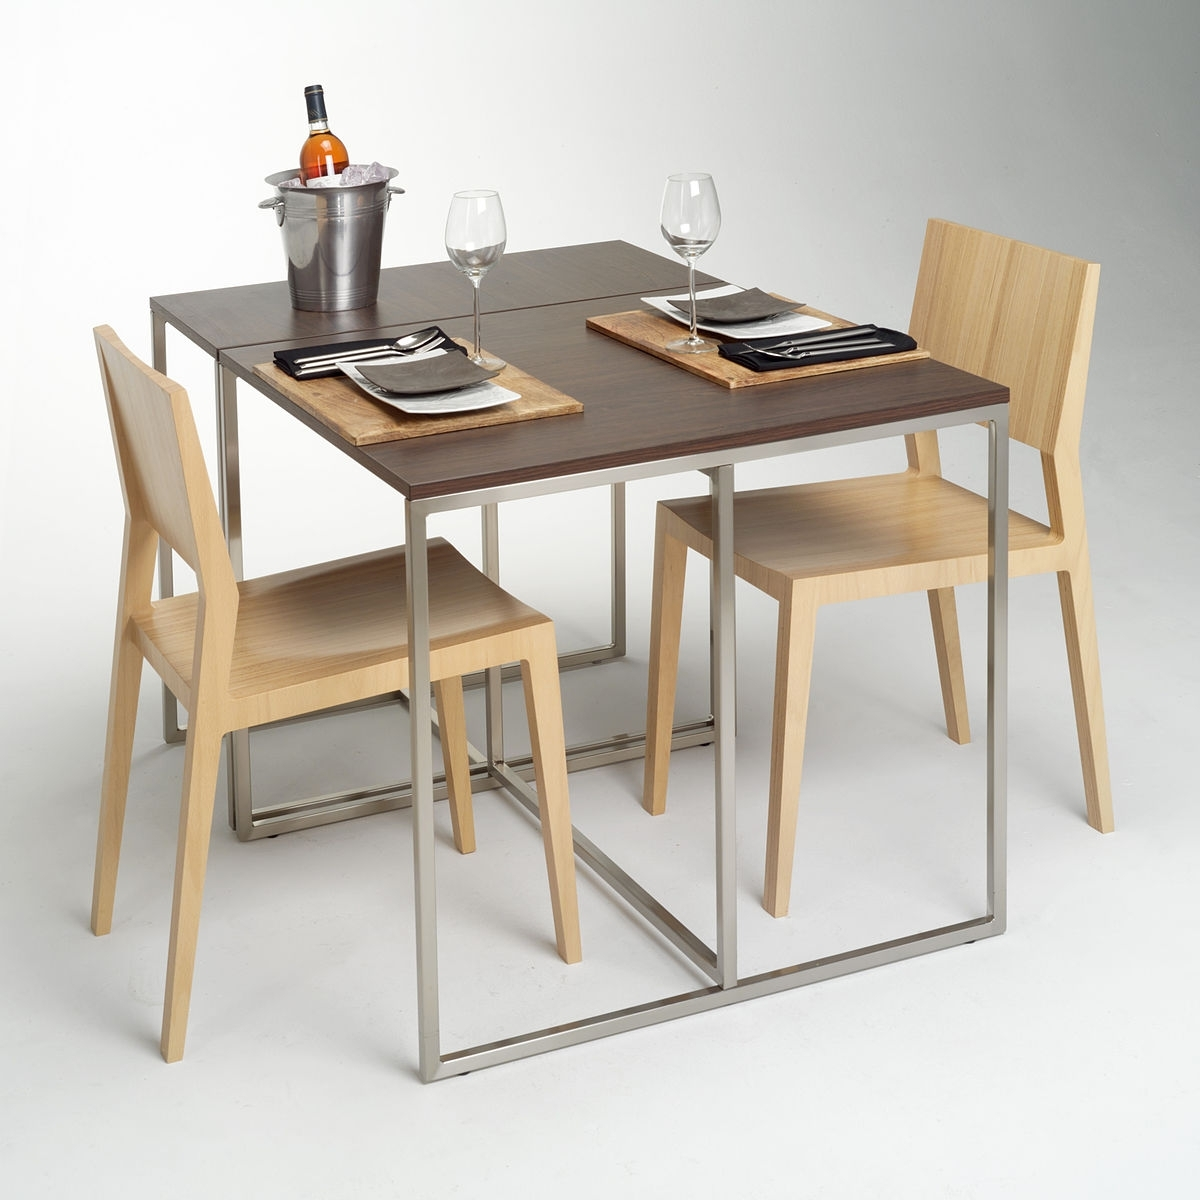 Most Current Dining Tables And Chairs For Two Within Furniture – Wikipedia (View 14 of 25)